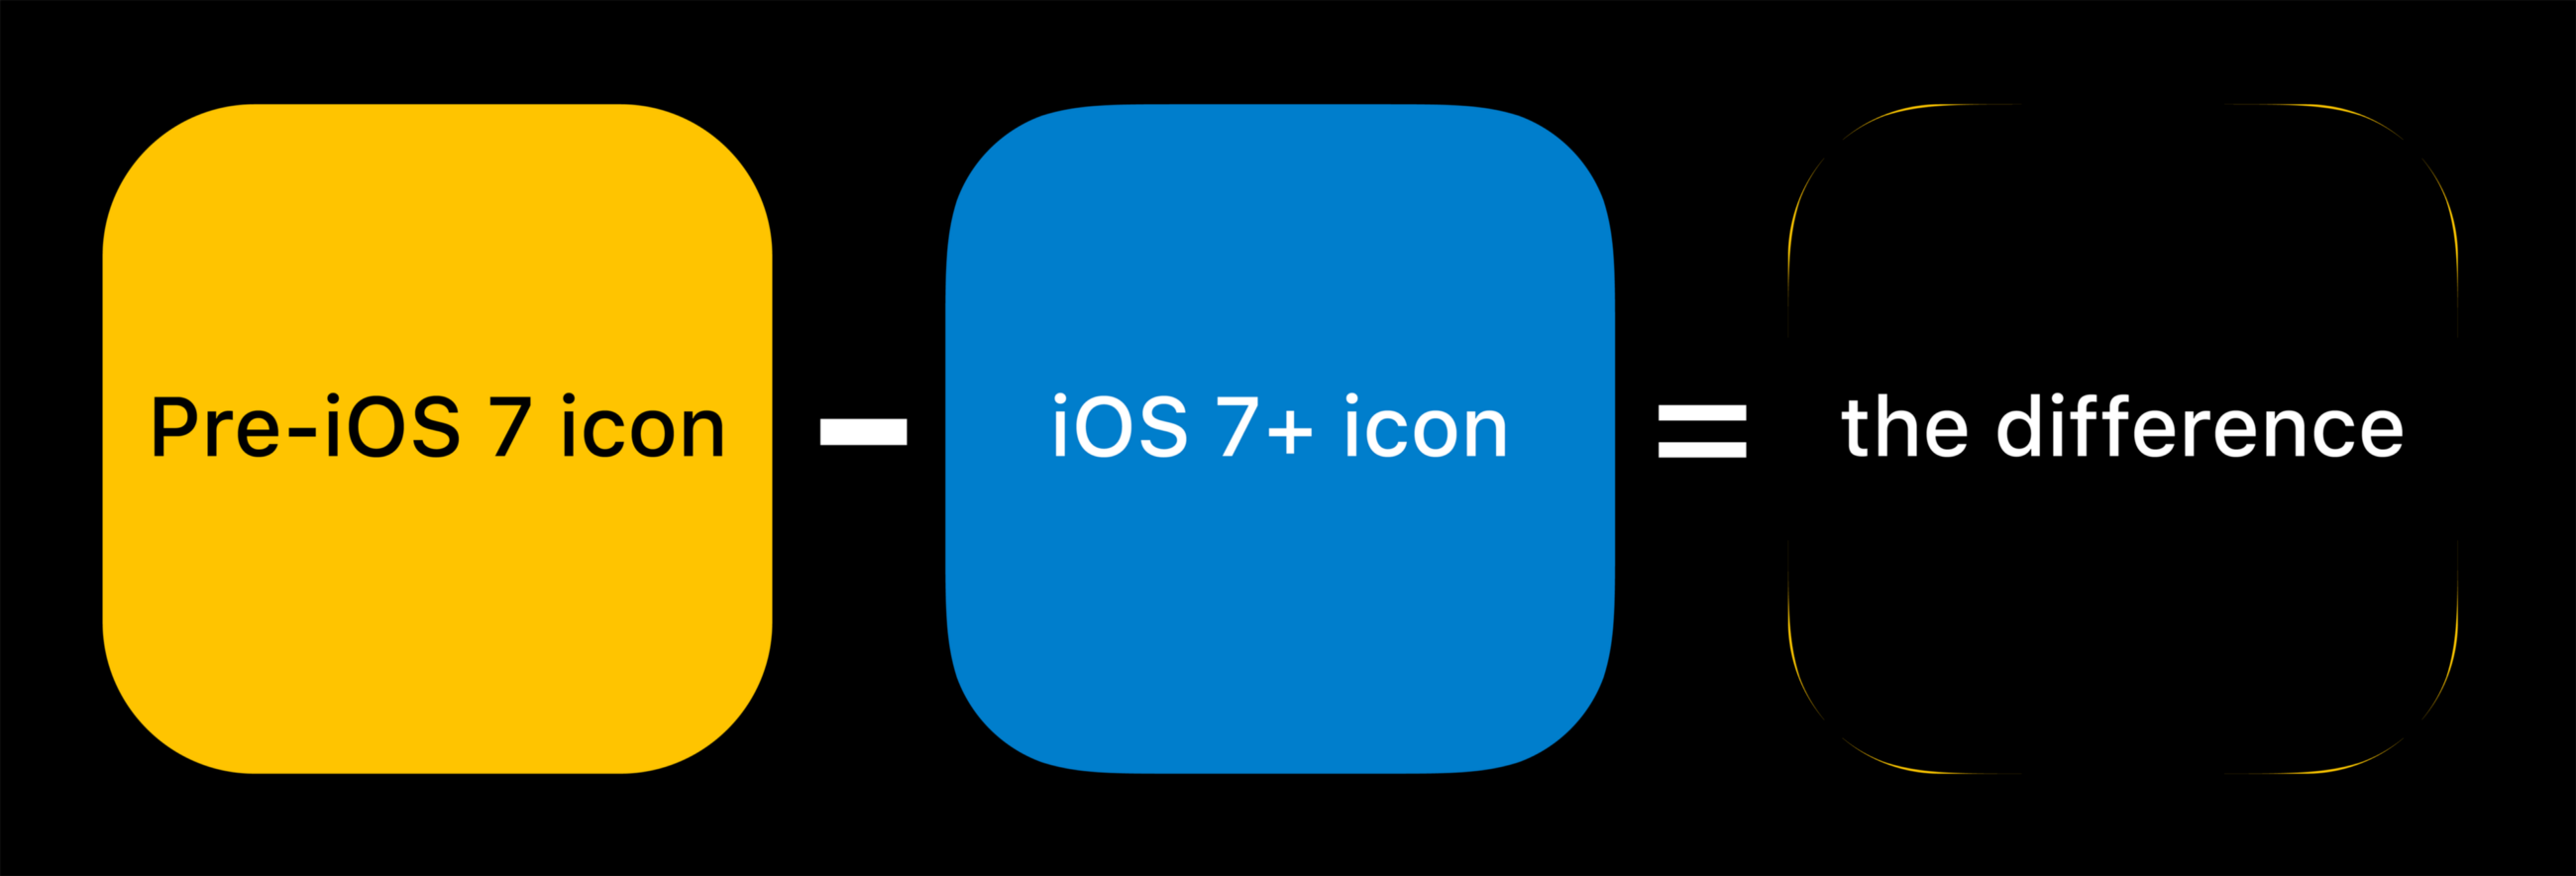 apple s icons have that shape for a very good reason